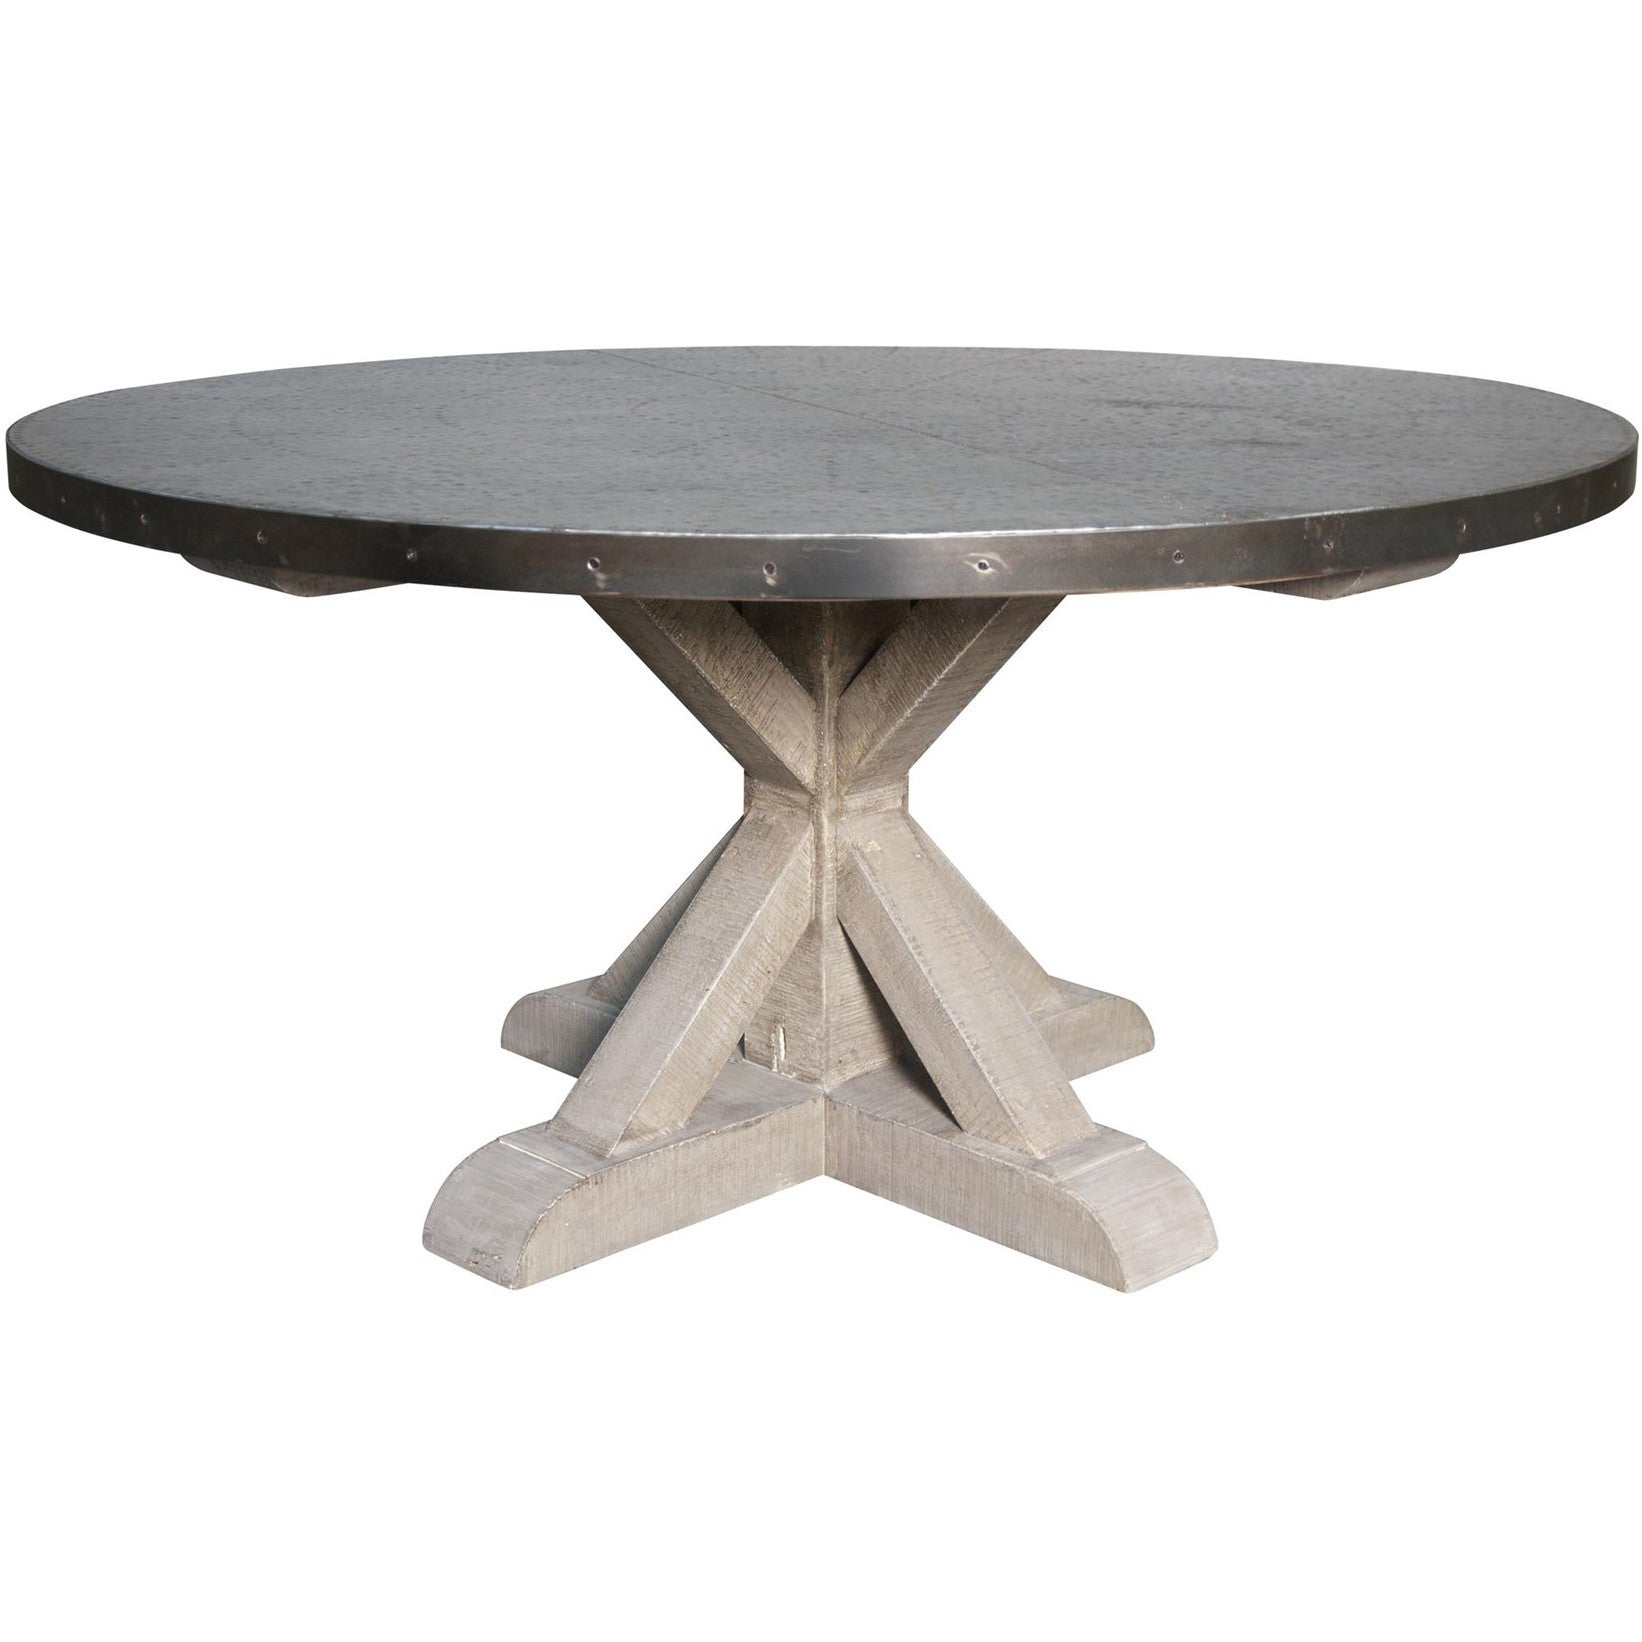 Noir Zinc Top Rd Table w Wooden X Base Vintage – LDC Home